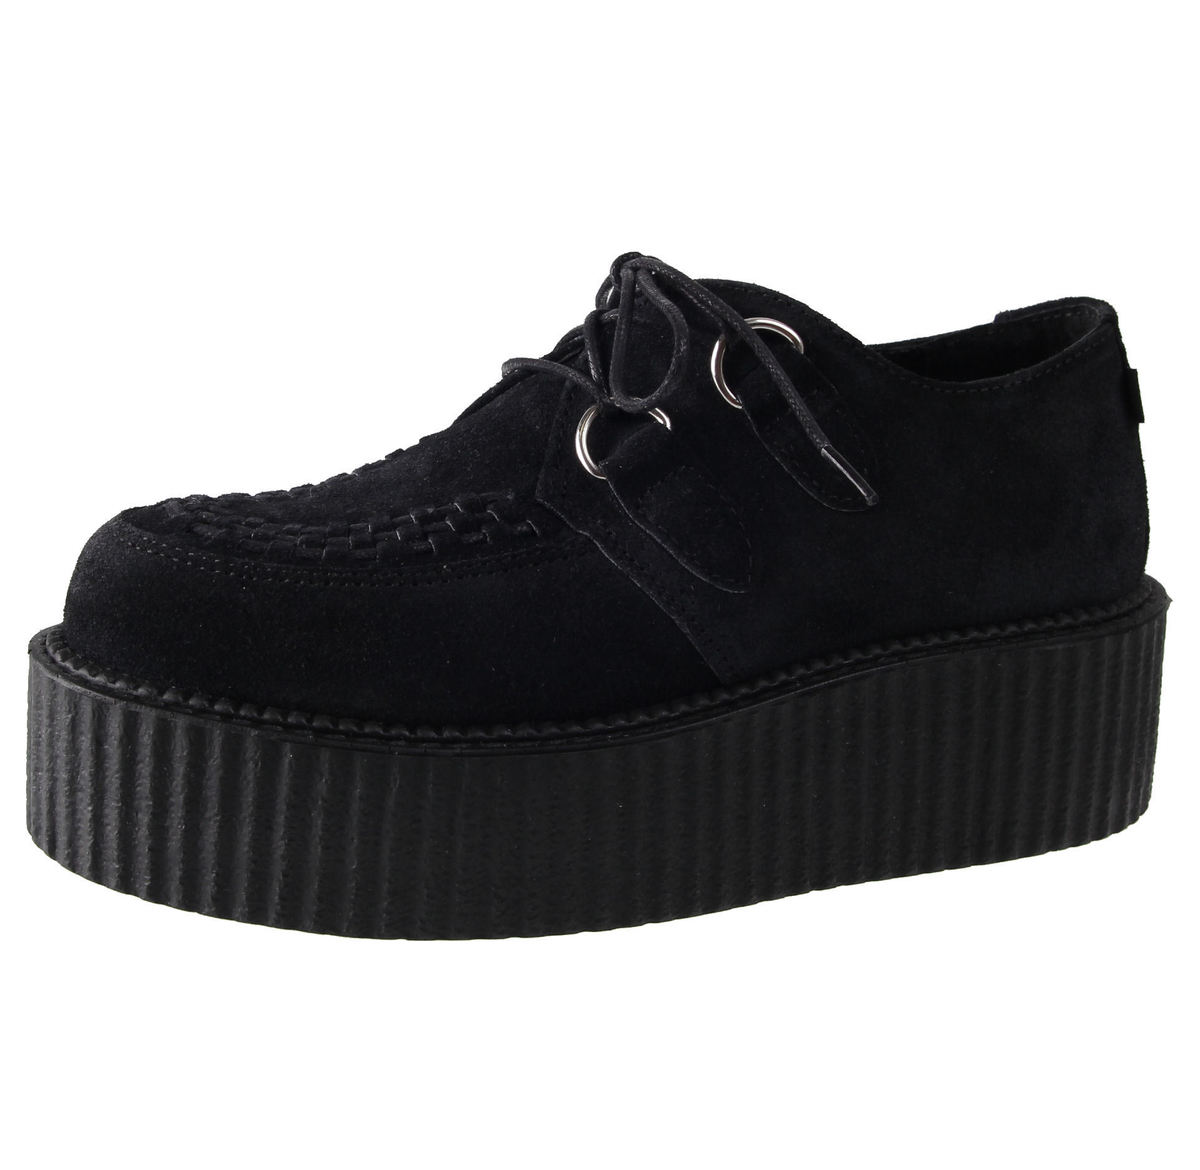 boty ALTERCORE - Creepers - Ered - Black - ALT007 46